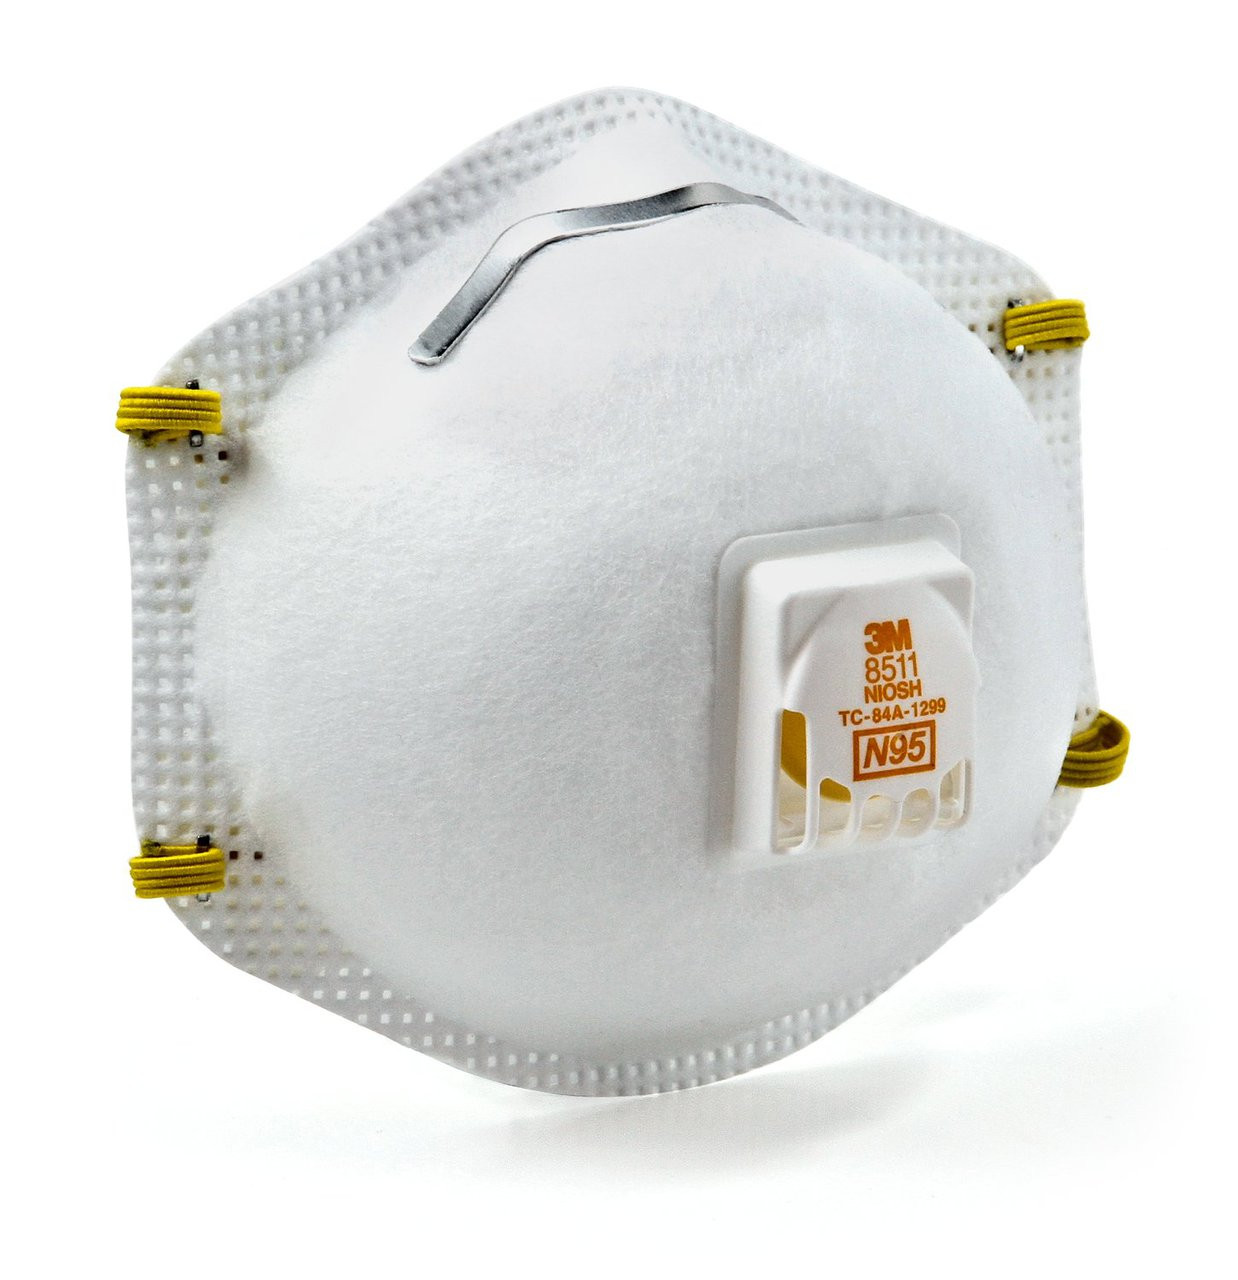 3M 8511 N95 Particulate Respirators - Box of 10